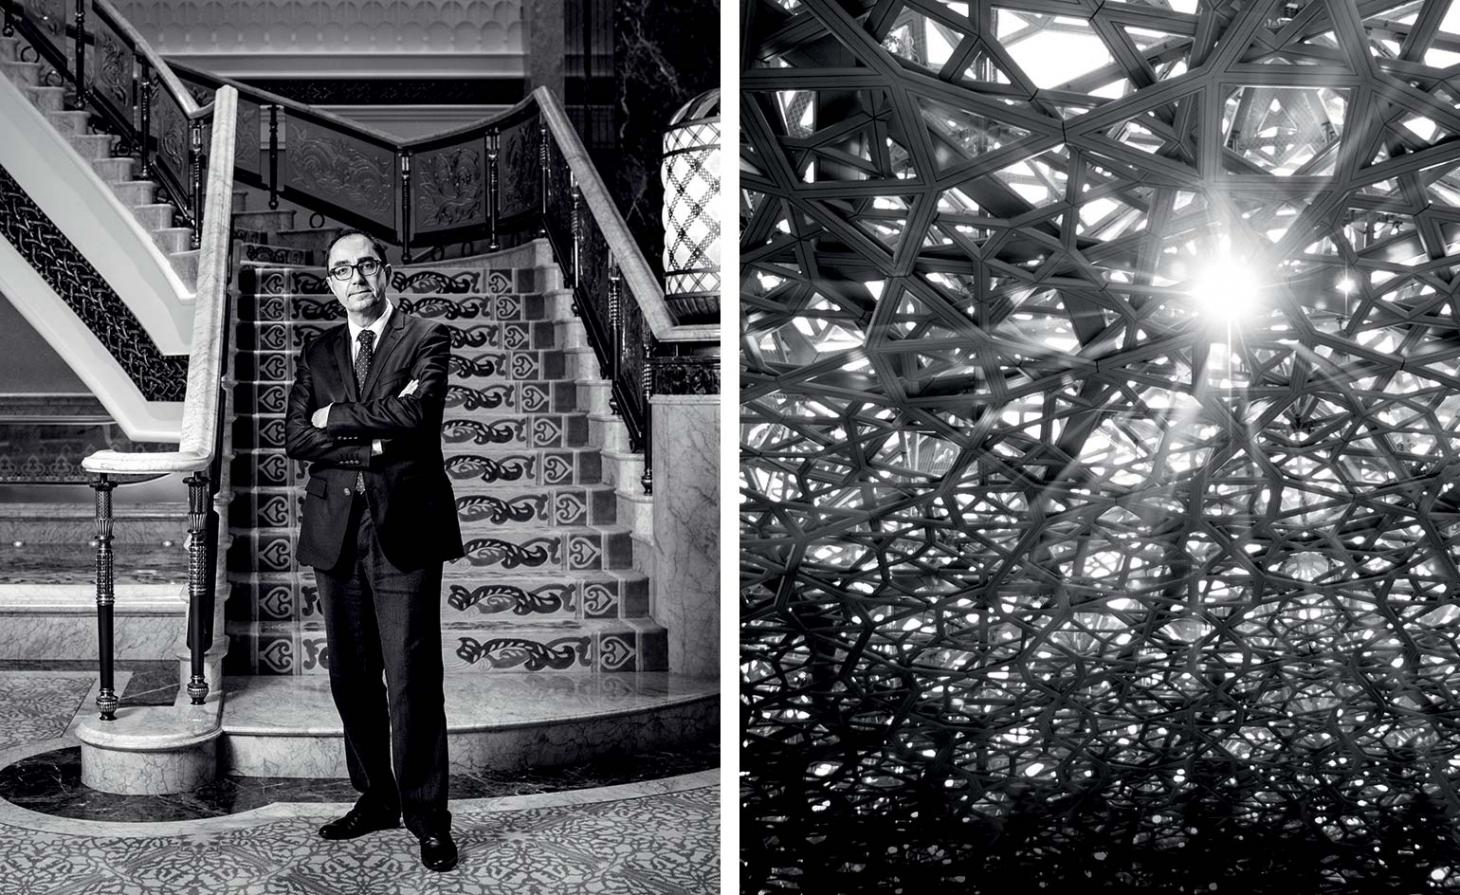 The Louvre Abu Dhabi will open this year and curator Jean-Luc Martinez is just a bit terrified